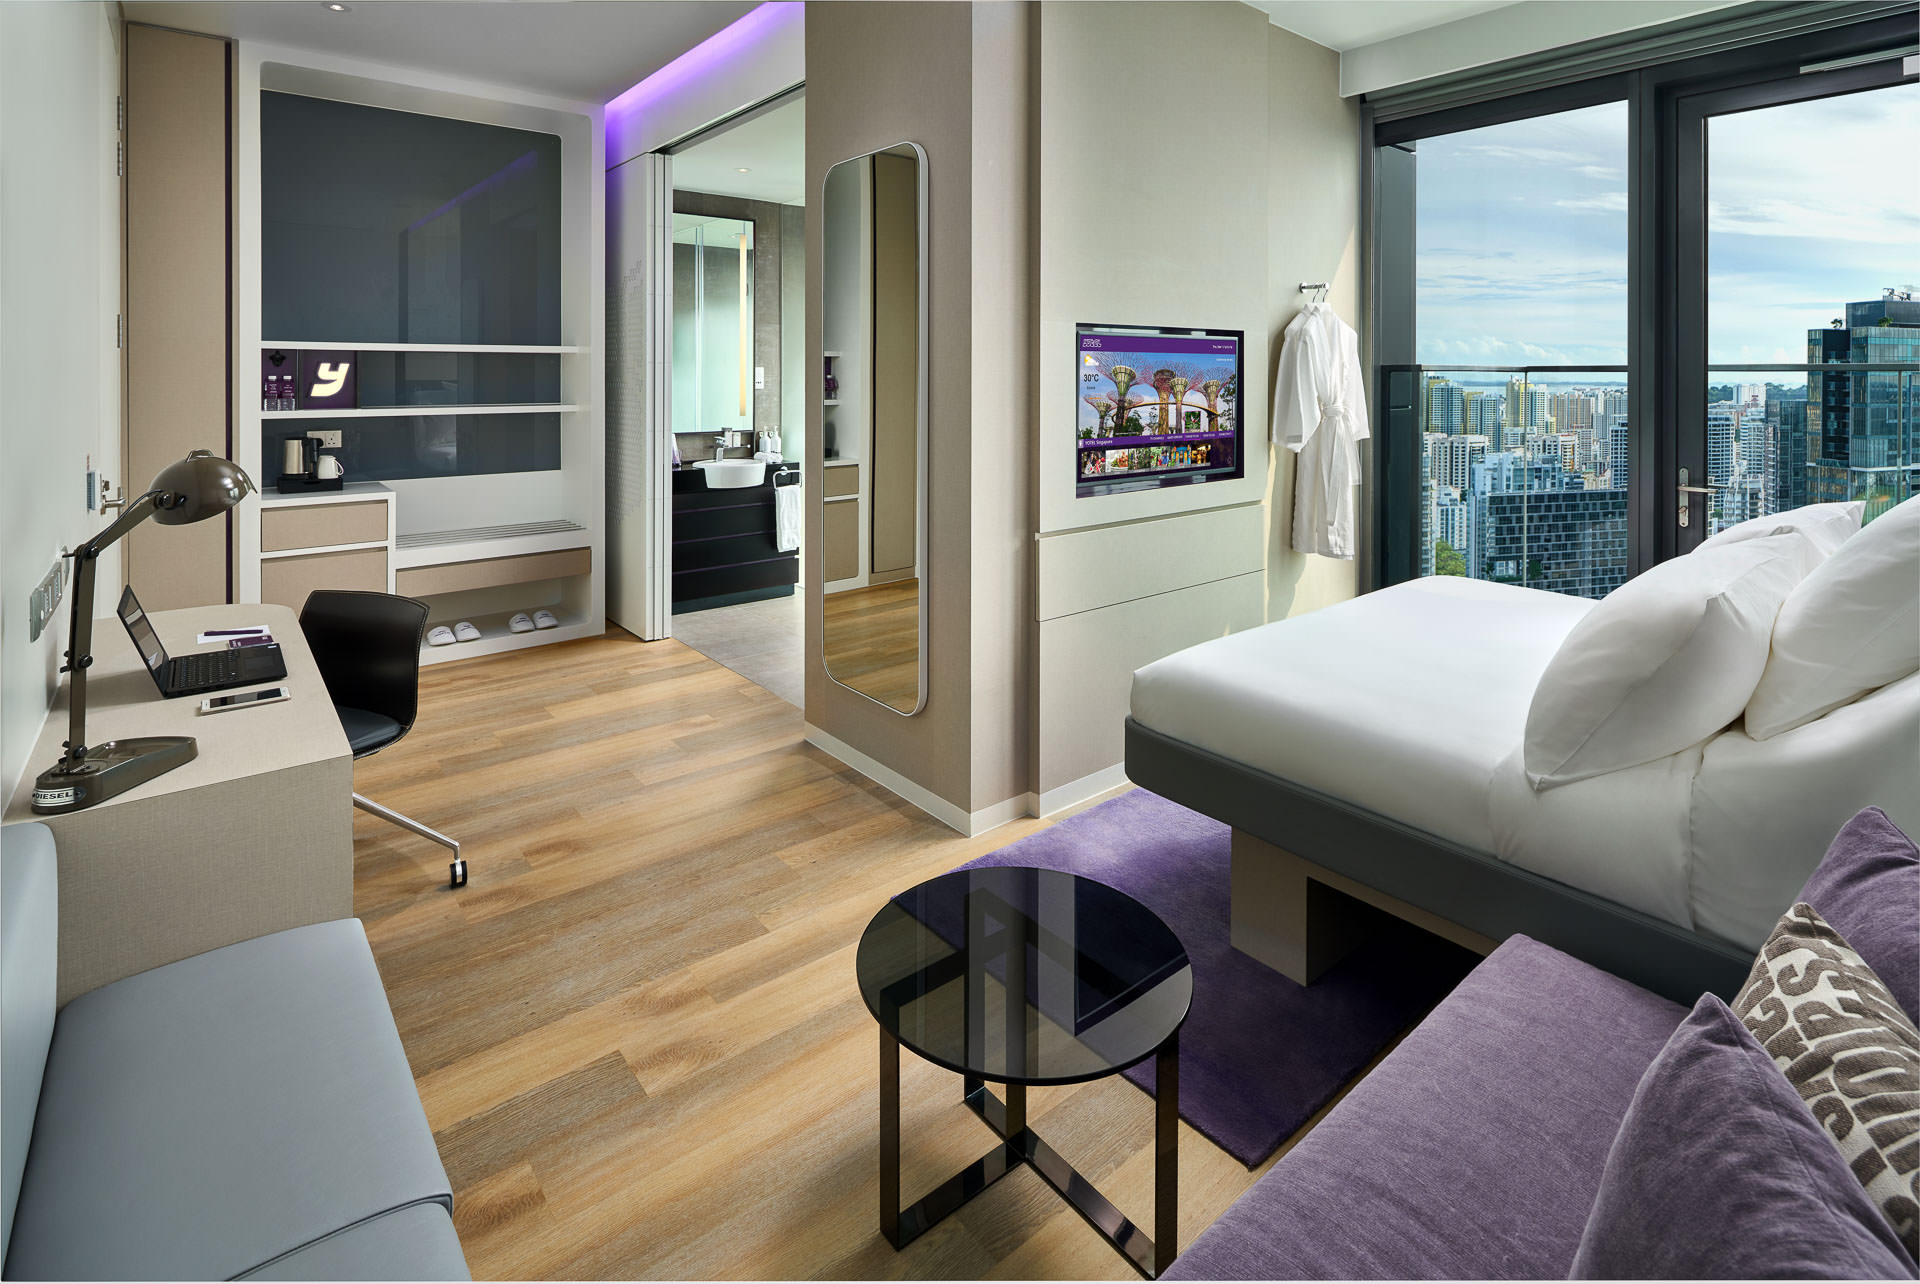 hotel interior photography of the deluxe room at yotel in singapore